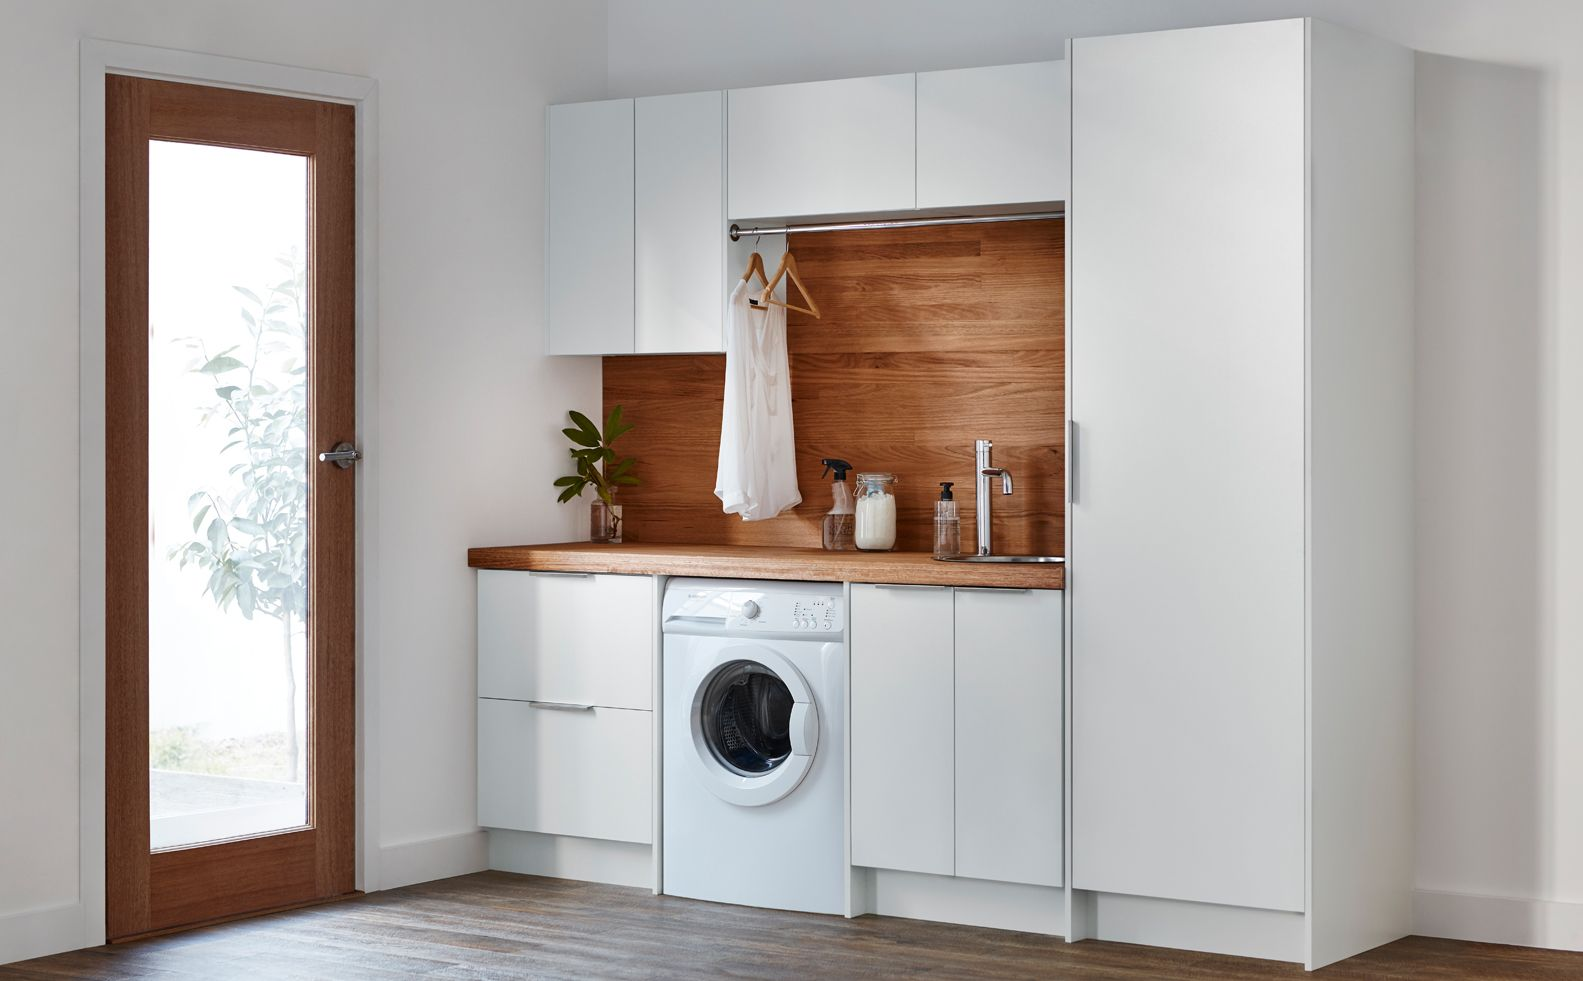 Laundry room and bathroom combo designs - Inspiration Gallery Bunnings Warehouse Laundry Bathroom Combolaundry Nooklaundry Closetsmall Laundrylaundry Room Designapartment